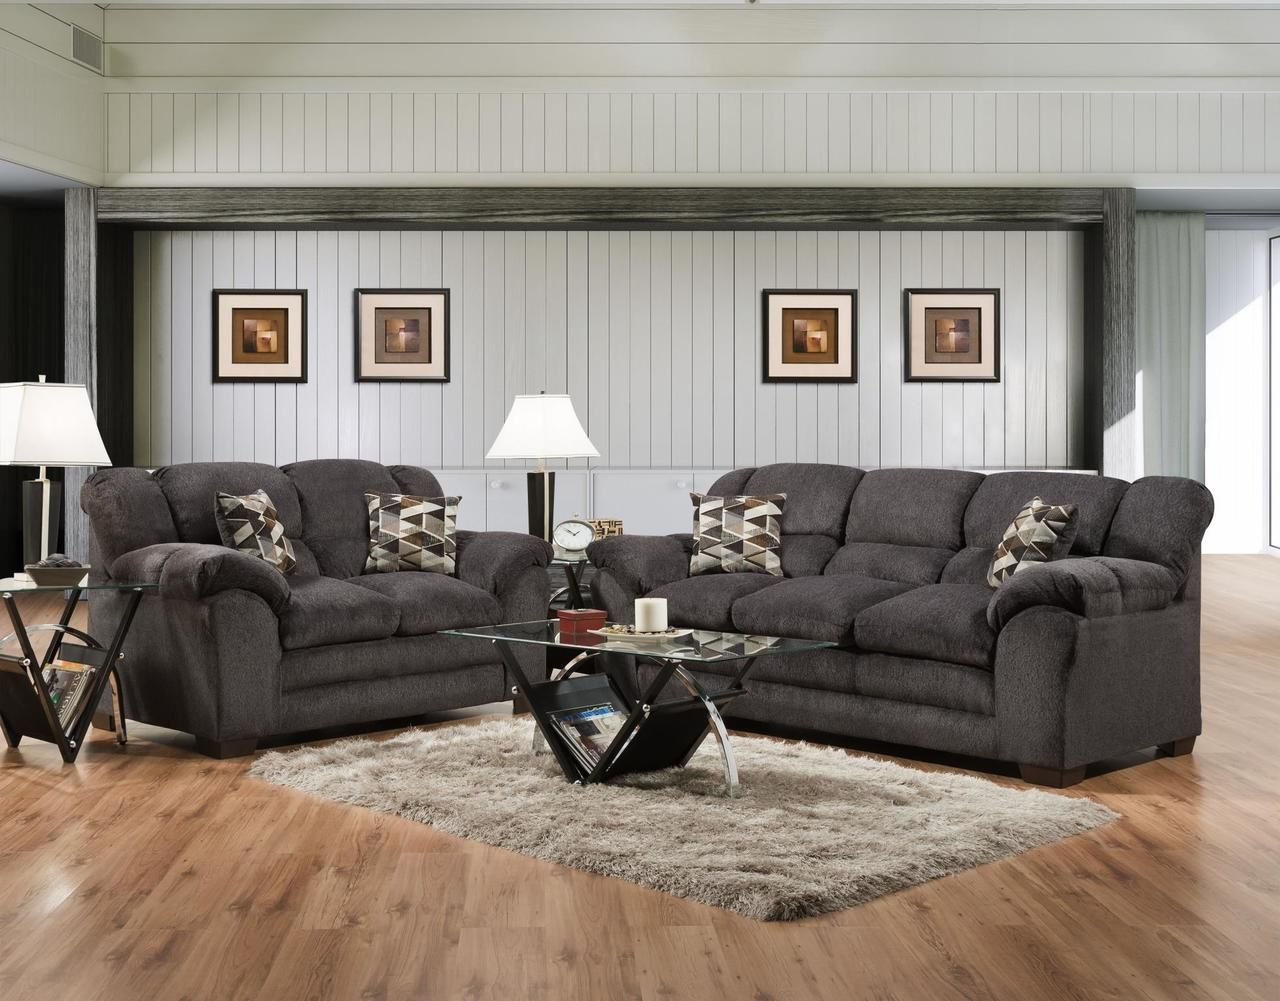 Delta Osaka Sumi Charcoal Sofa Loveseat Set Living Room Sets Sofa And Loveseat Set Living Room Leather